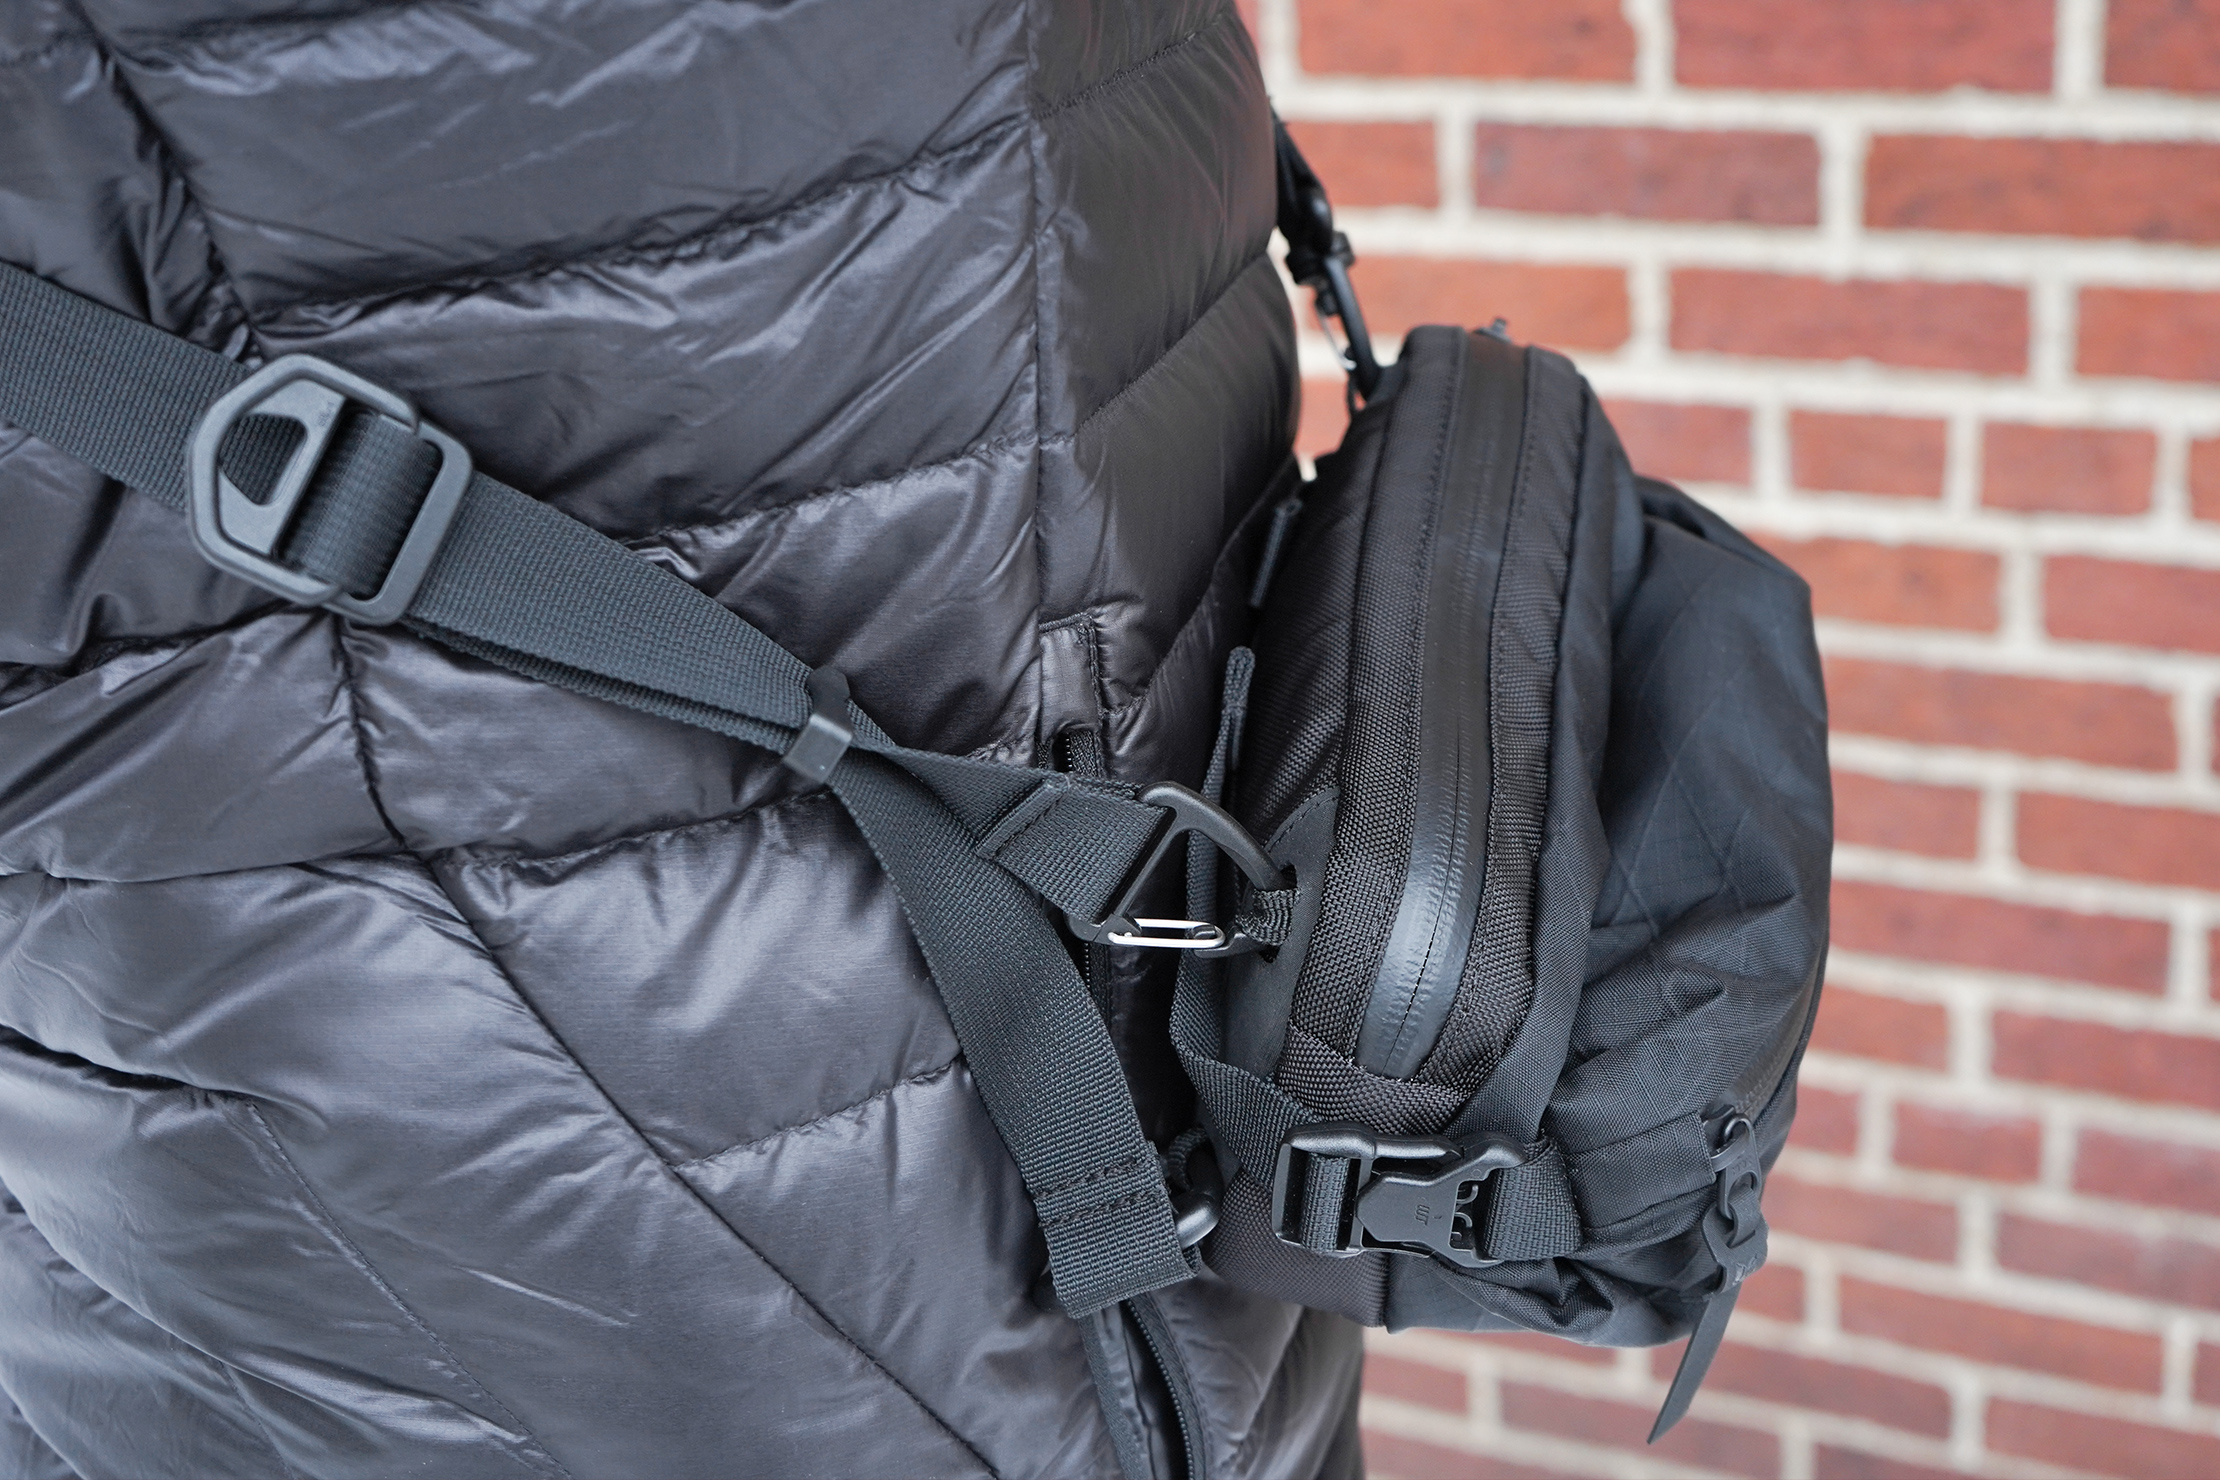 CODEOFBELL ANNEX CARRIER | There's some twisting along this part of the strap